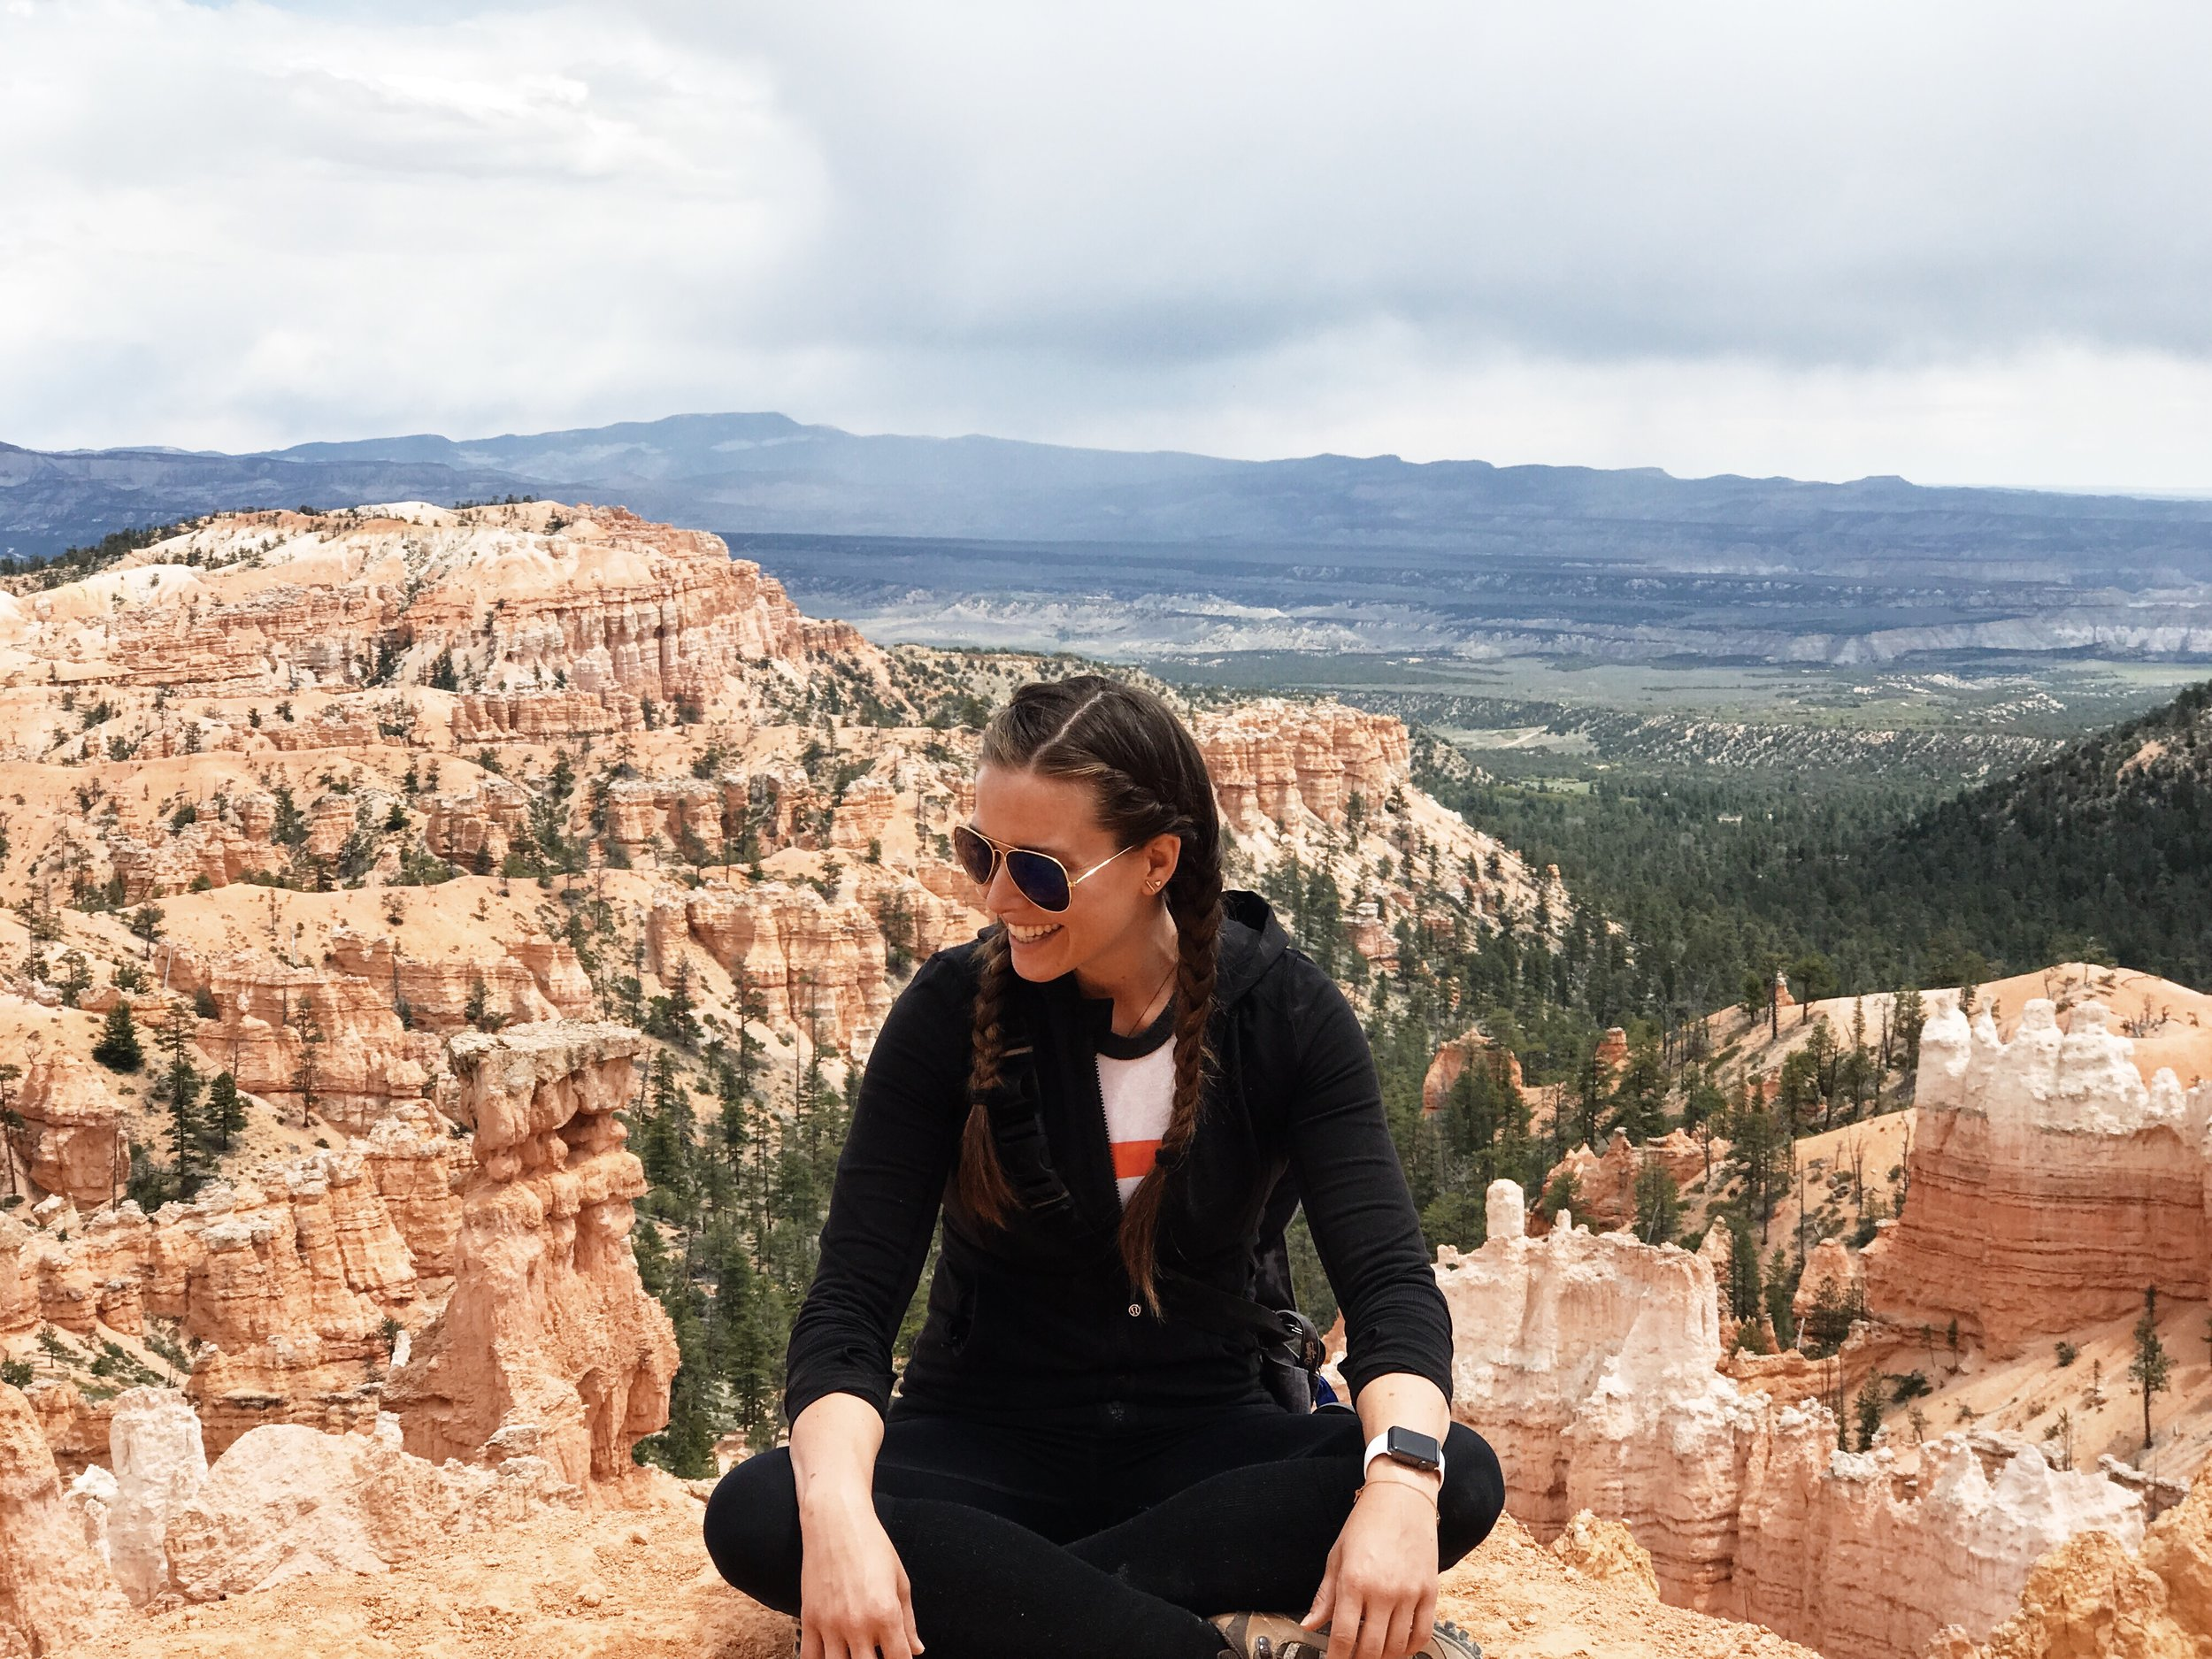 This is Bryce Canyon, it's freaking beautiful. Also we hiked 10 miles right before I got a last minute self-tape request back at our hotel...